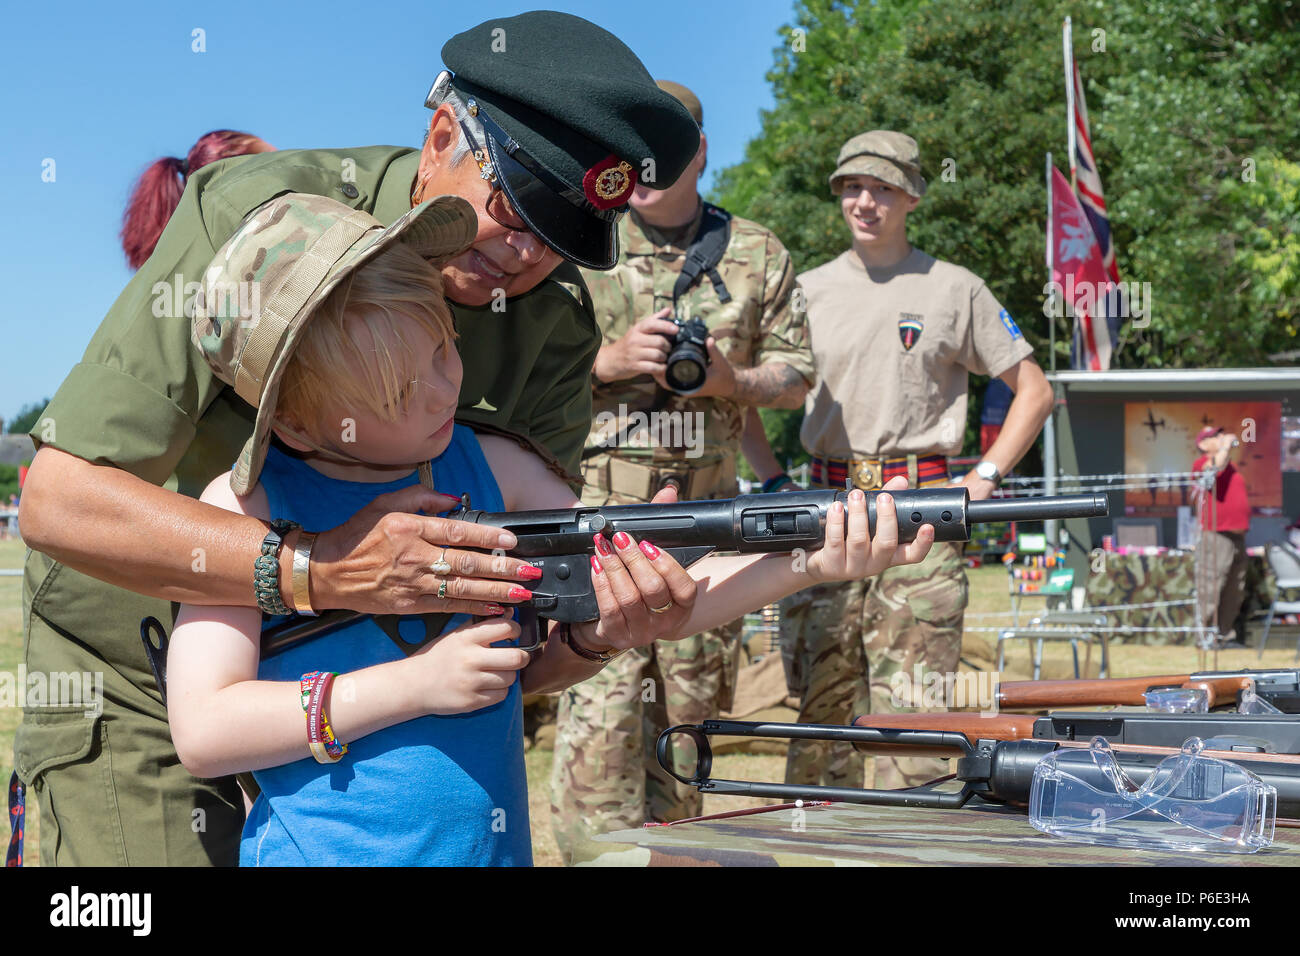 Warrington, UK, 30 June 2018 – Crosfields Rugby Amateur Rugby League Football Club Ground was the stage for the annual Armed Forces Day in Warrington. This was the 9th Annual Tom Sephton Memorial Trophy festival where various community groups, emergency services and Rugby organisations and charities provided interesting and engaging activities that added to the festival atmosphere of the event Credit: John Hopkins/Alamy Live News Stock Photo